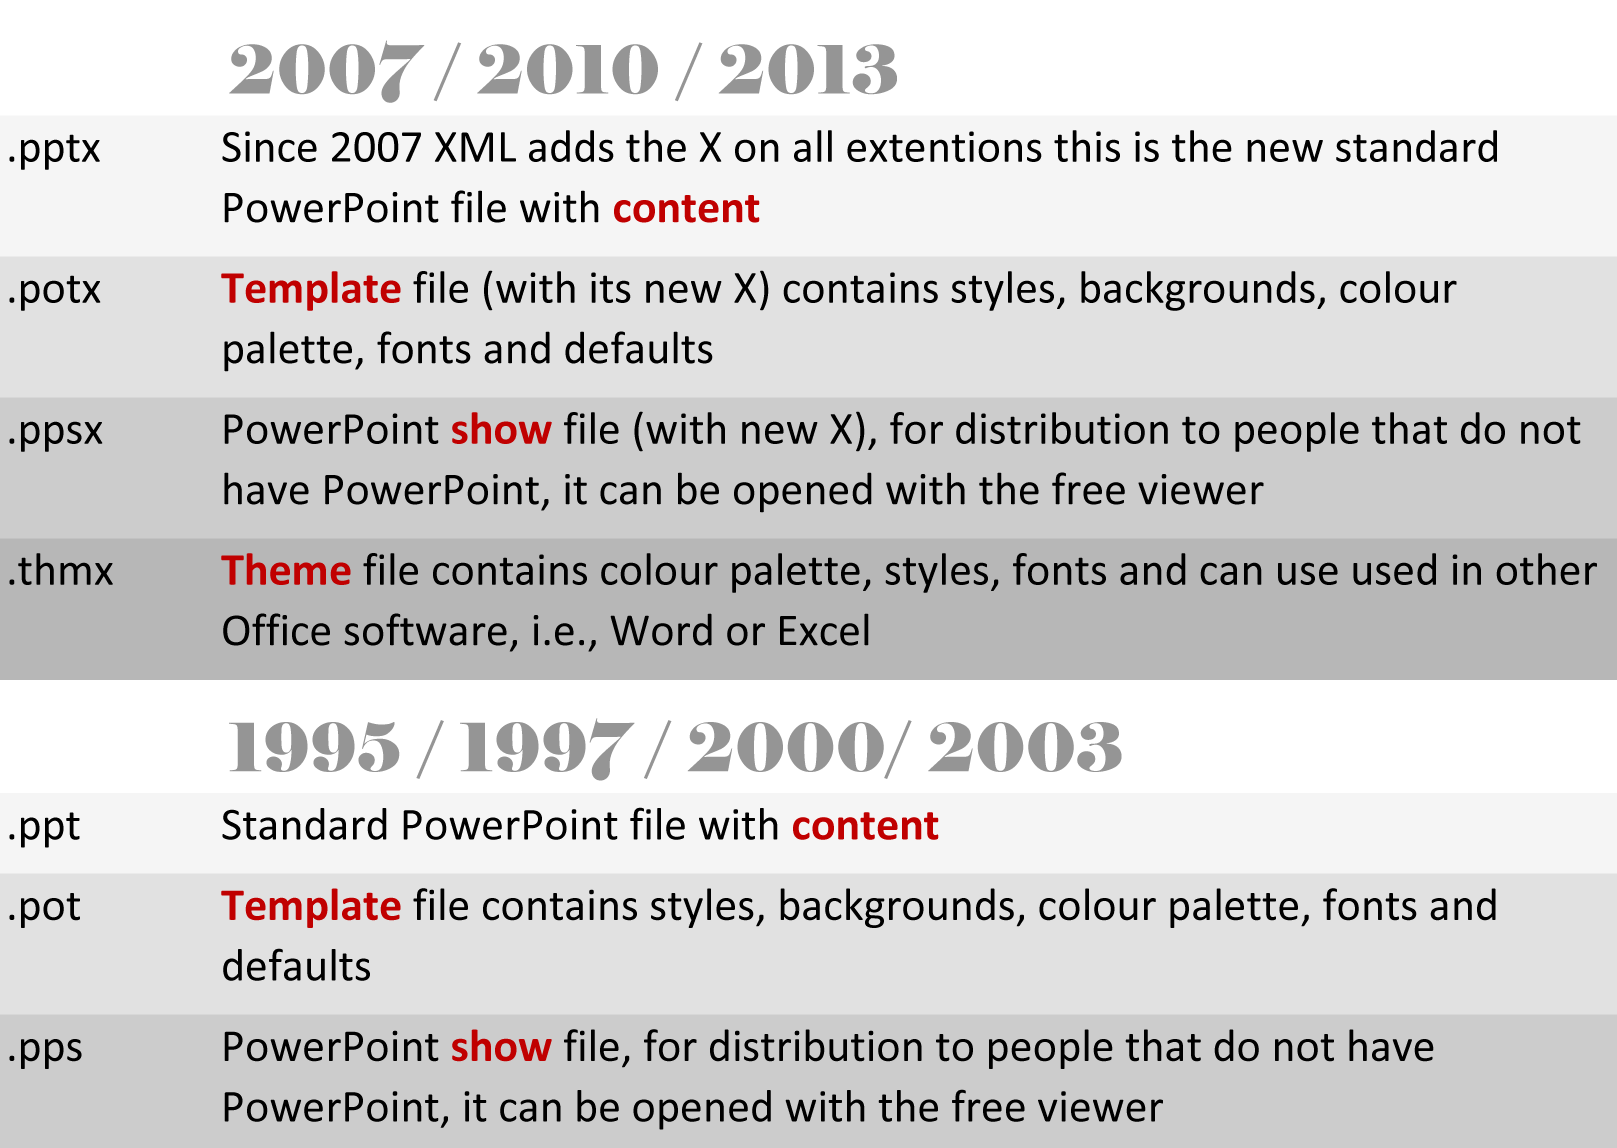 Powerpoint file name extensions ppt pot pps pptx potx ppsx ppt file name extensions toneelgroepblik